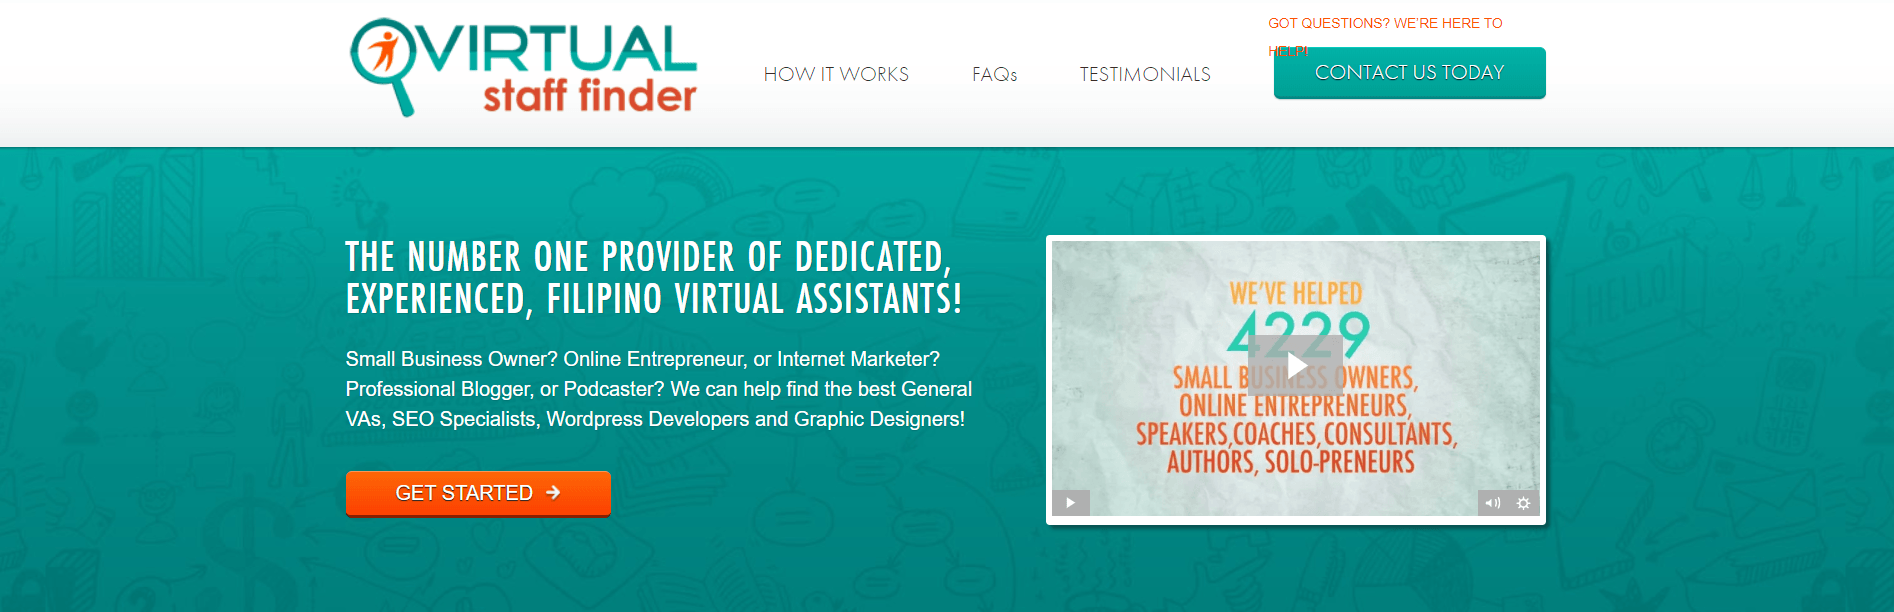 Virtual Staff Finder is a virtual assistant company